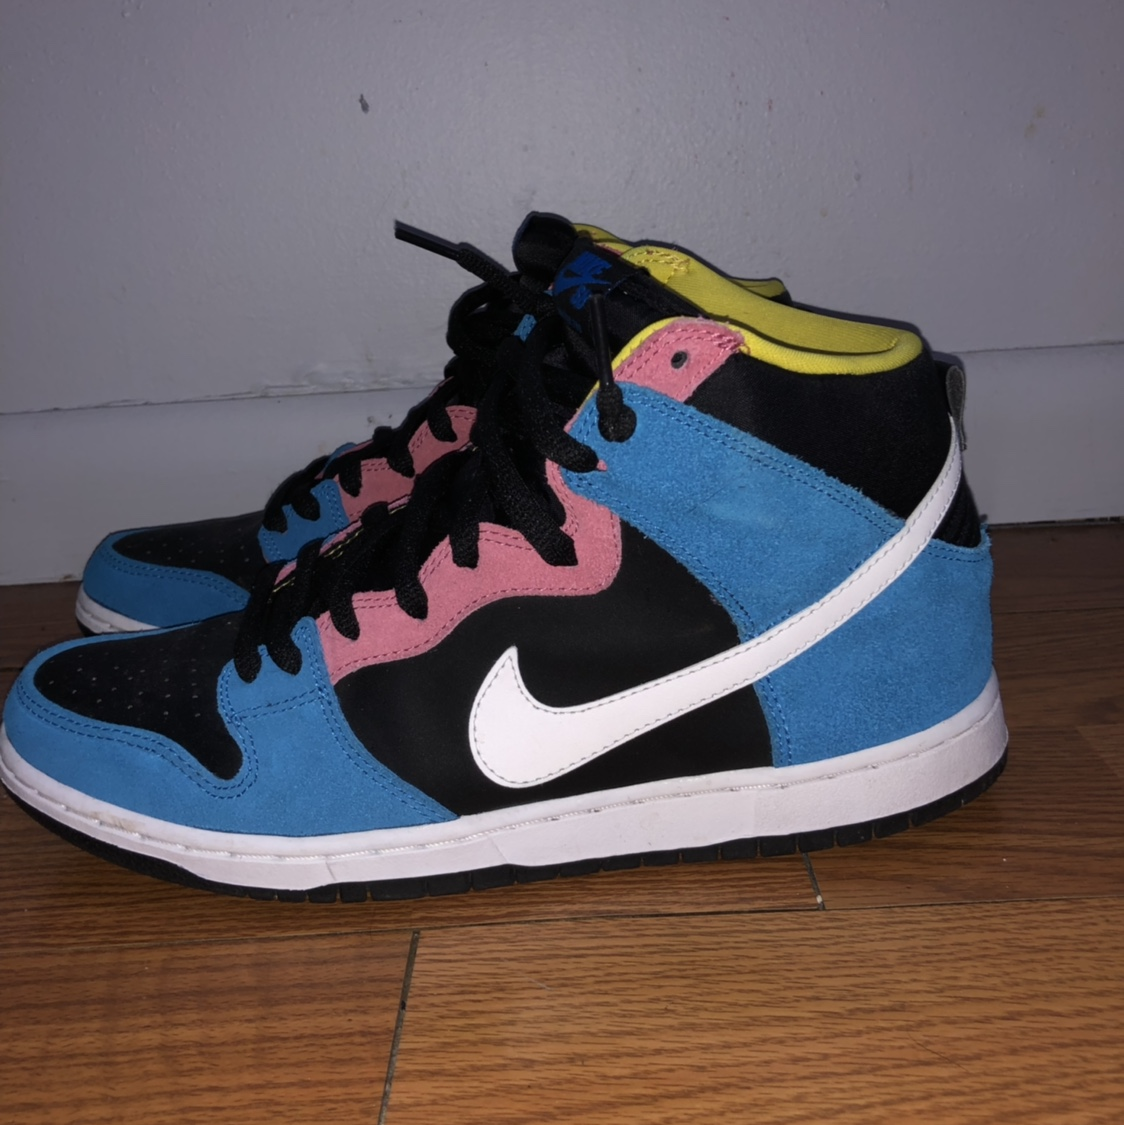 on sale 0624a 25eca Nike SB Dunk High Bazooka Joe 9/10 - Depop